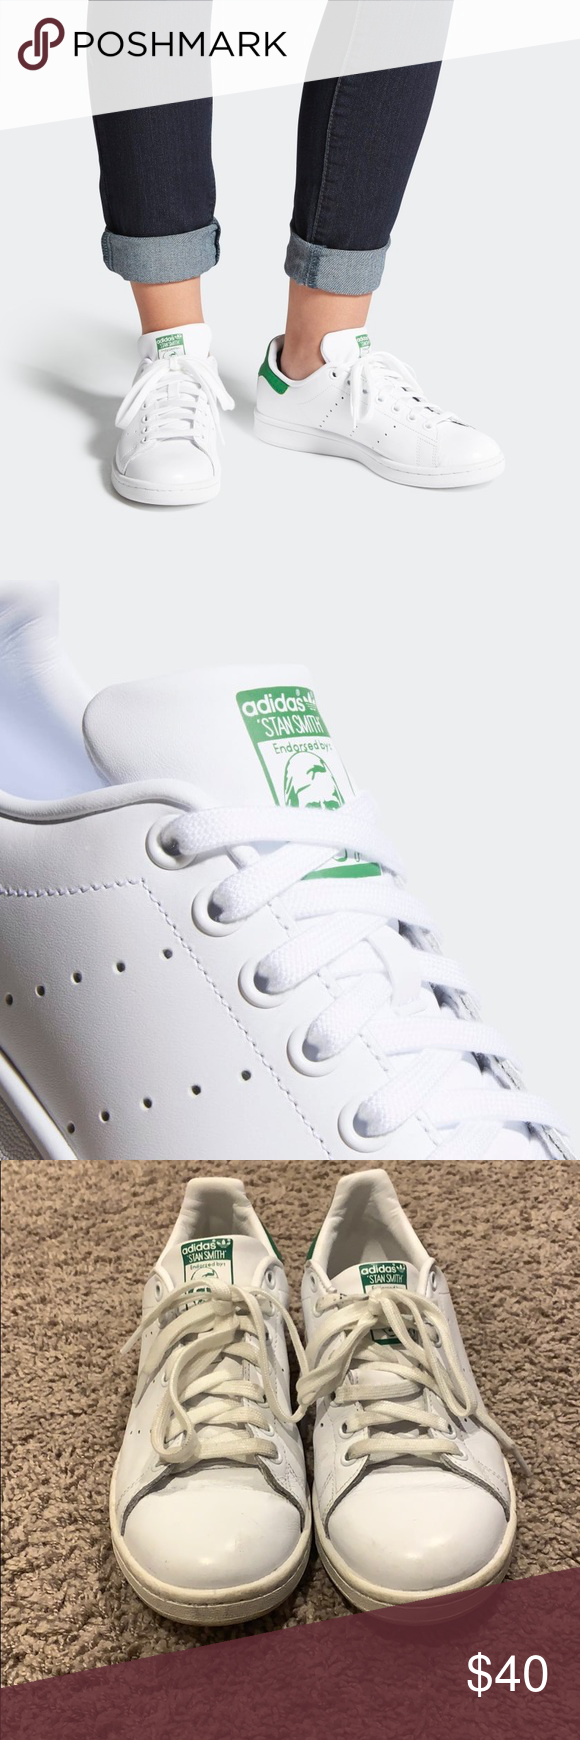 Adidas shoes stan smith, Shoes sneakers